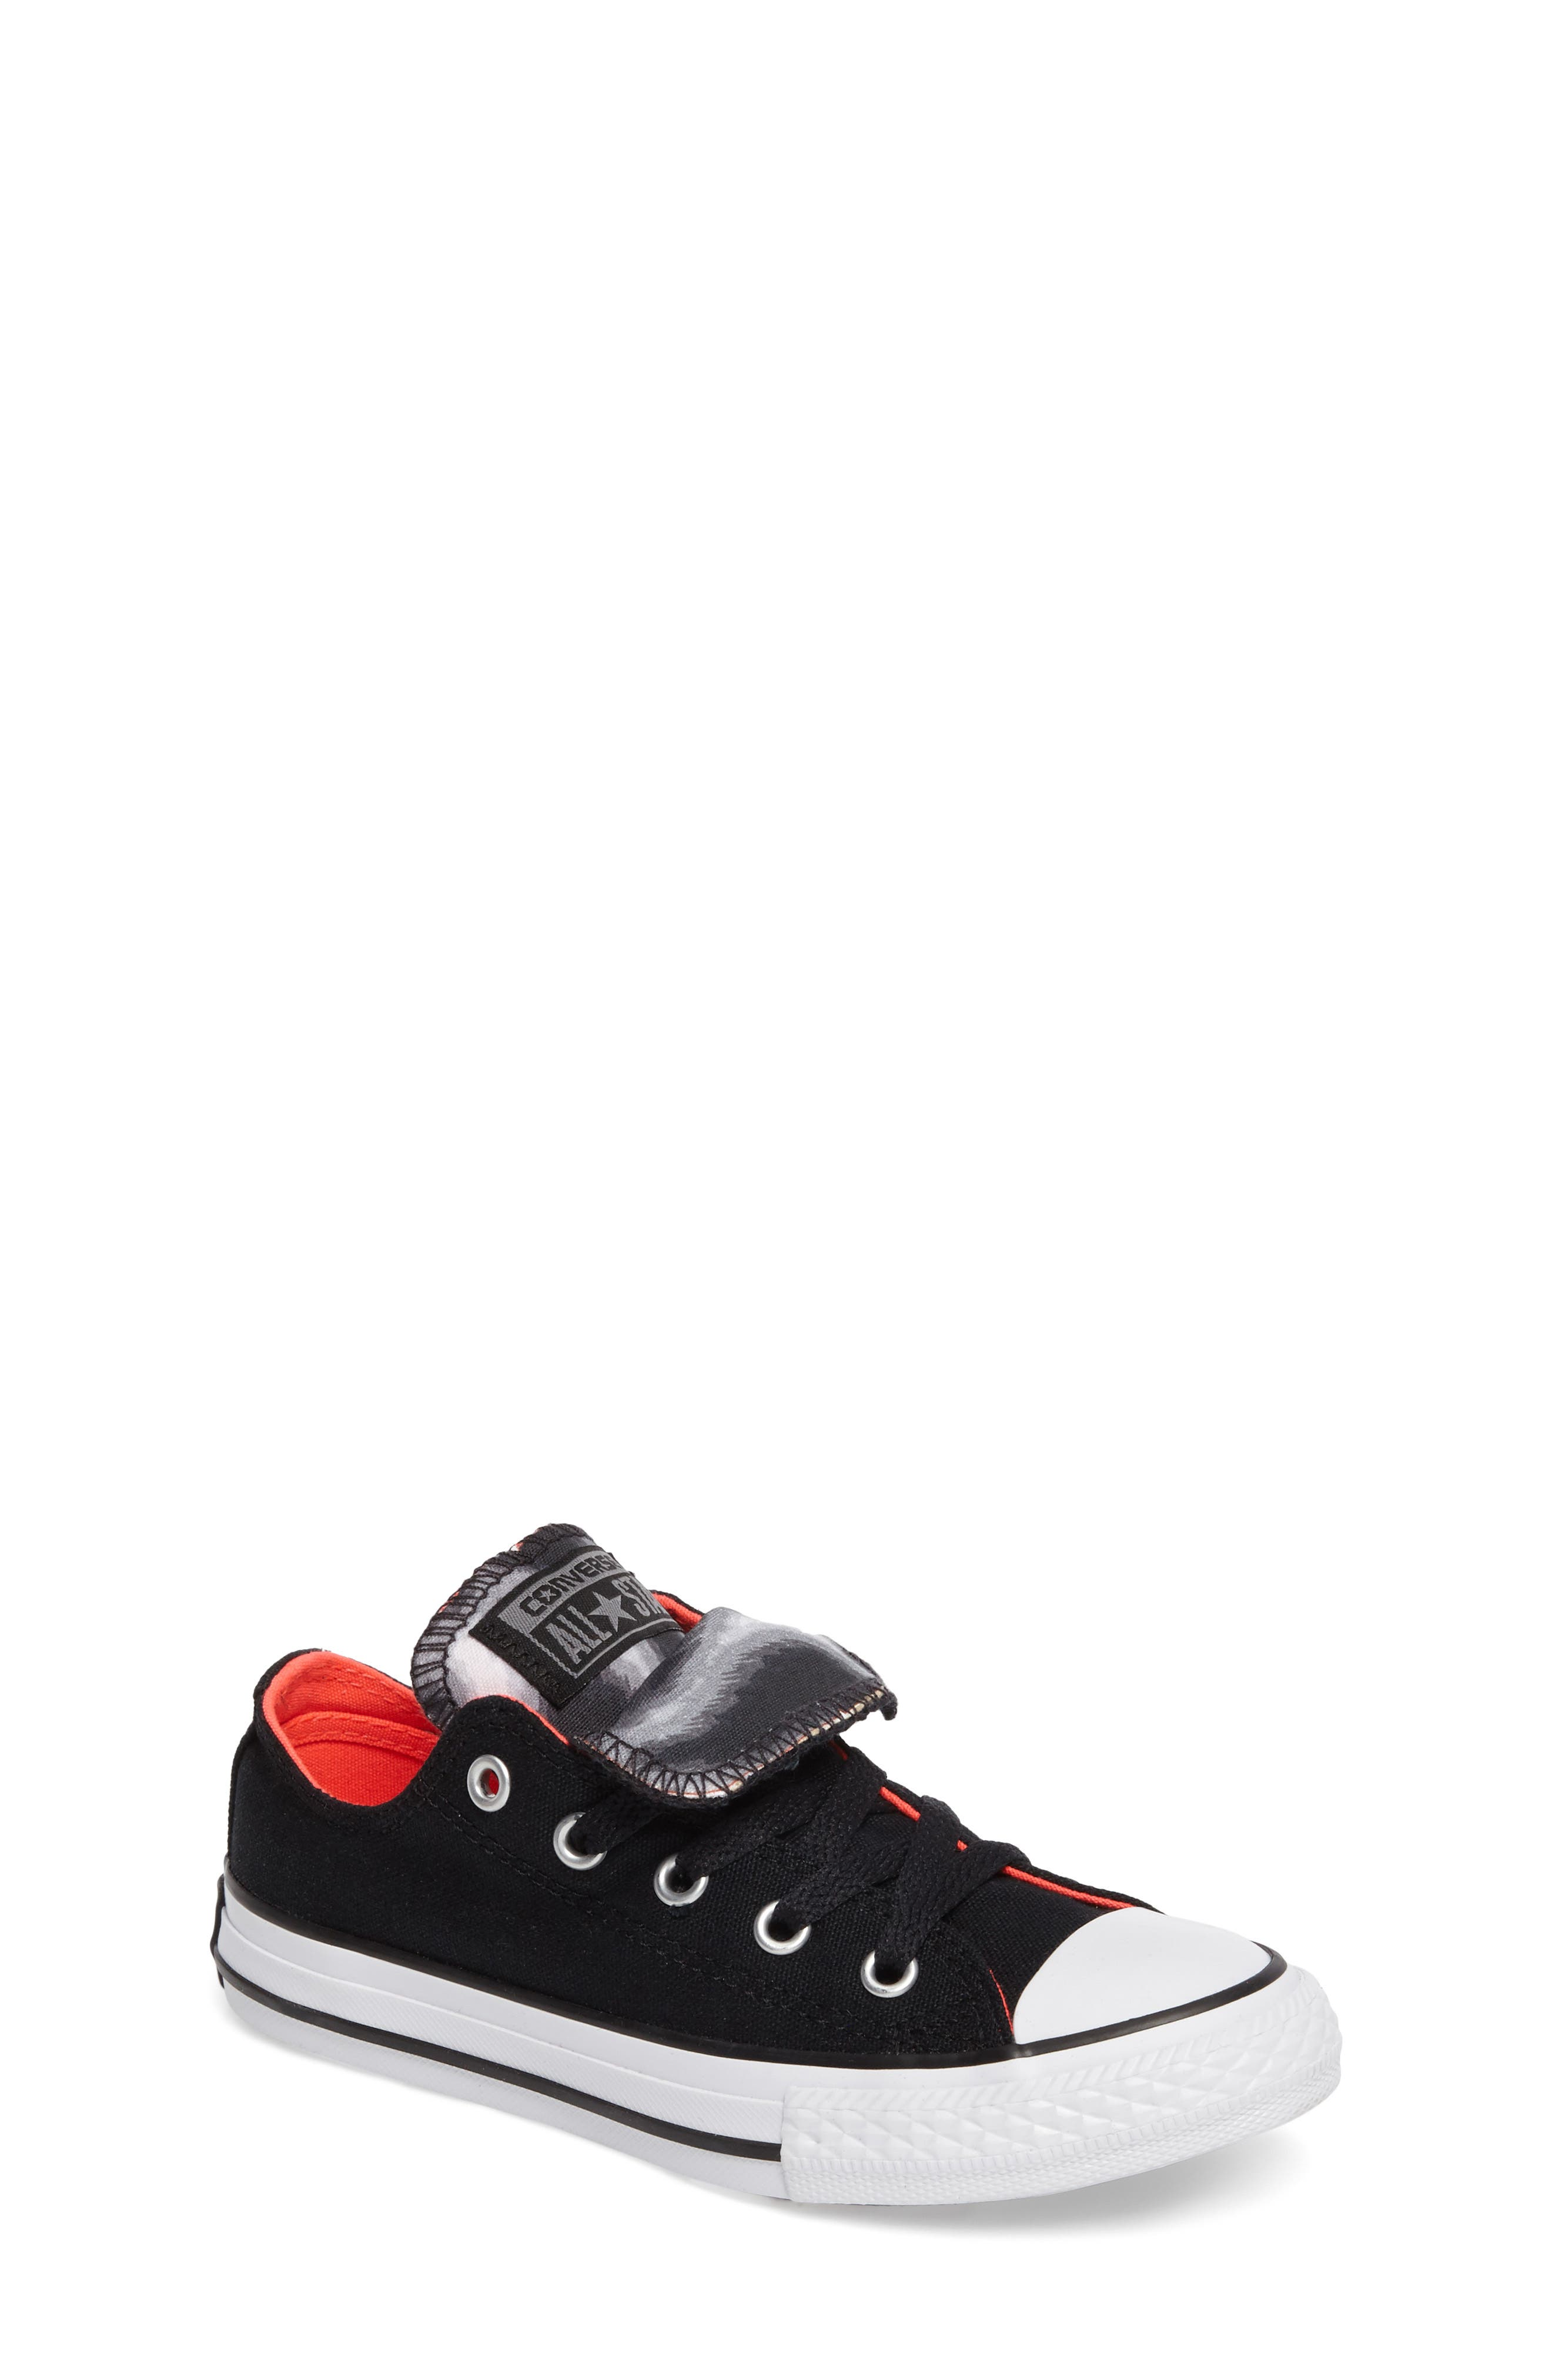 Alternate Image 1 Selected - Converse All Star® Double Tongue Sneaker (Toddler, Little Kid, Big Kid)